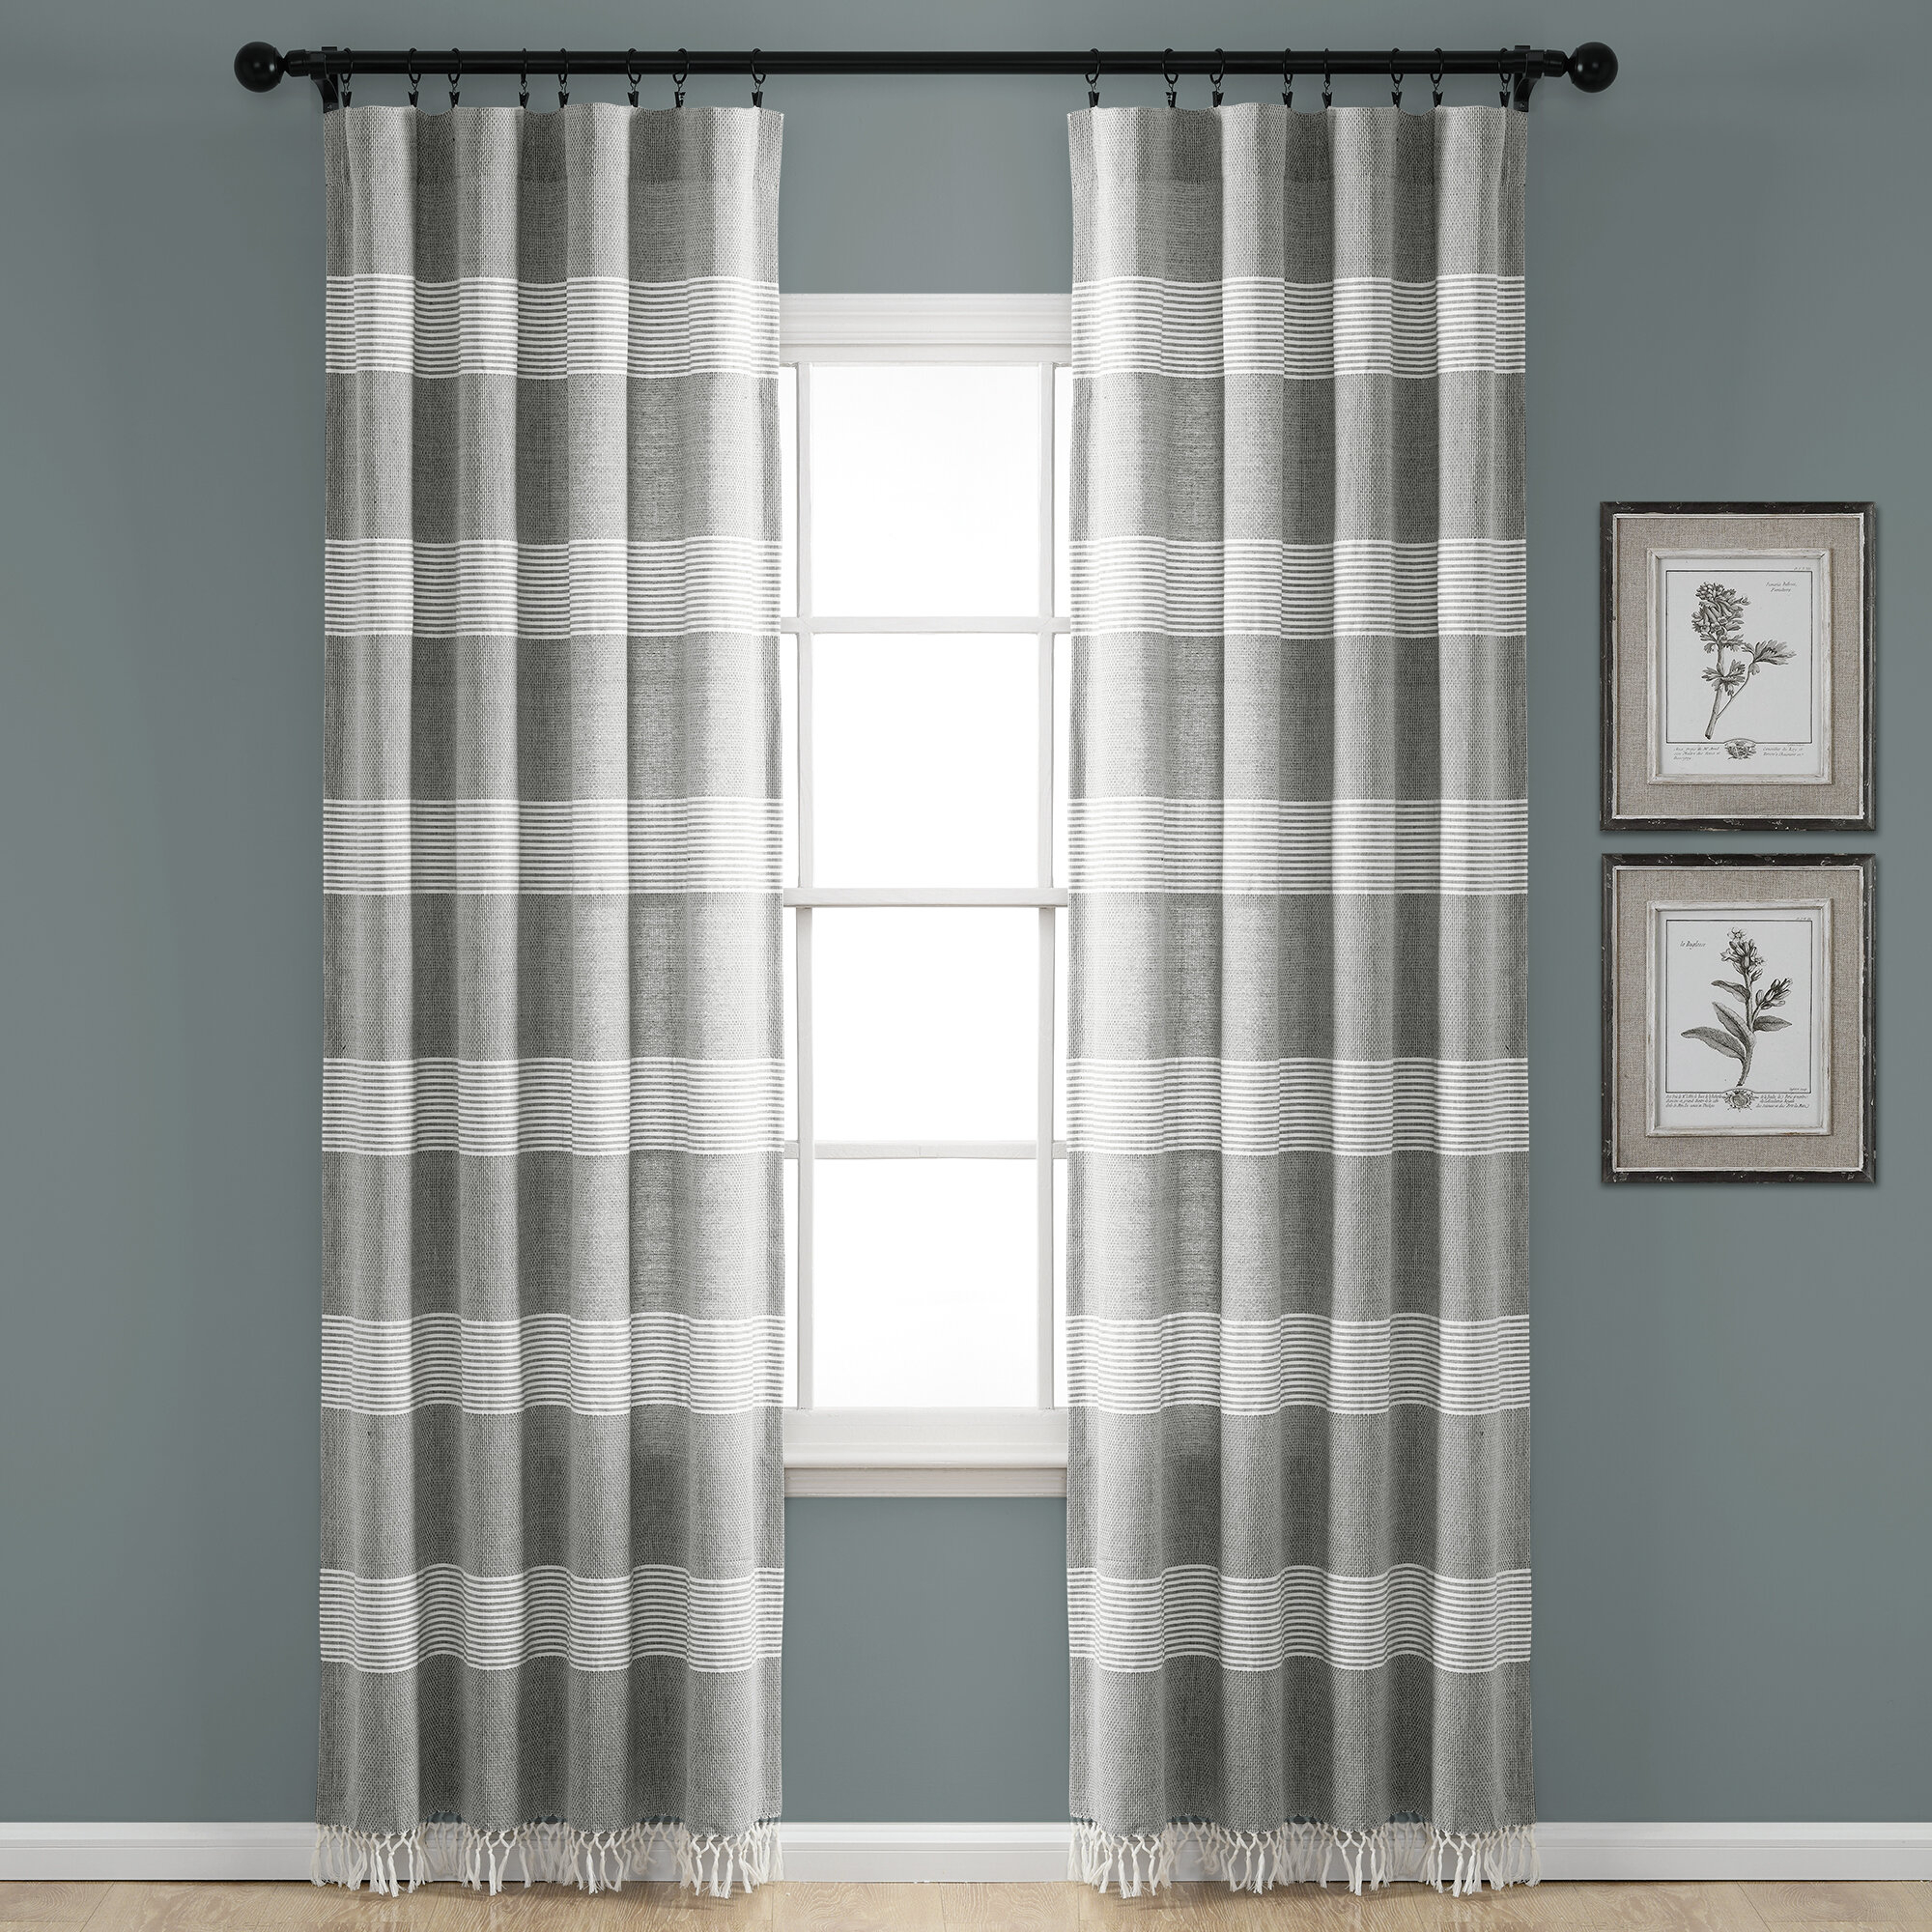 Rhys Tucker Yarn Dyed Knotted Tassel Window Striped Rod Pocket Curtain Panels With Regard To Tassels Applique Sheer Rod Pocket Top Curtain Panel Pairs (View 14 of 30)